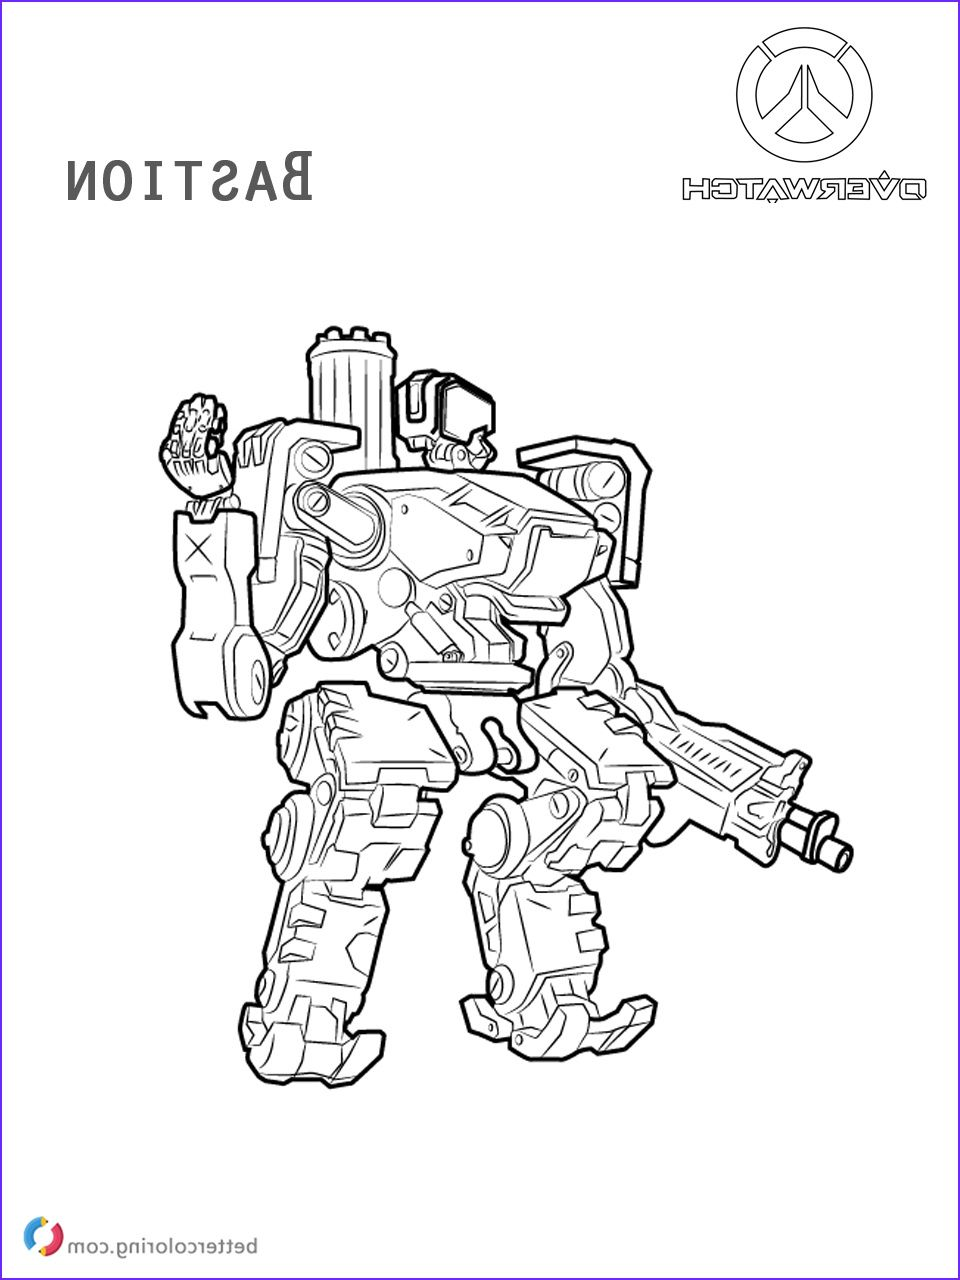 15 Unique Overwatch Coloring Pages Photos Coloring Pages Pokemon Coloring Pages Free Halloween Coloring Pages